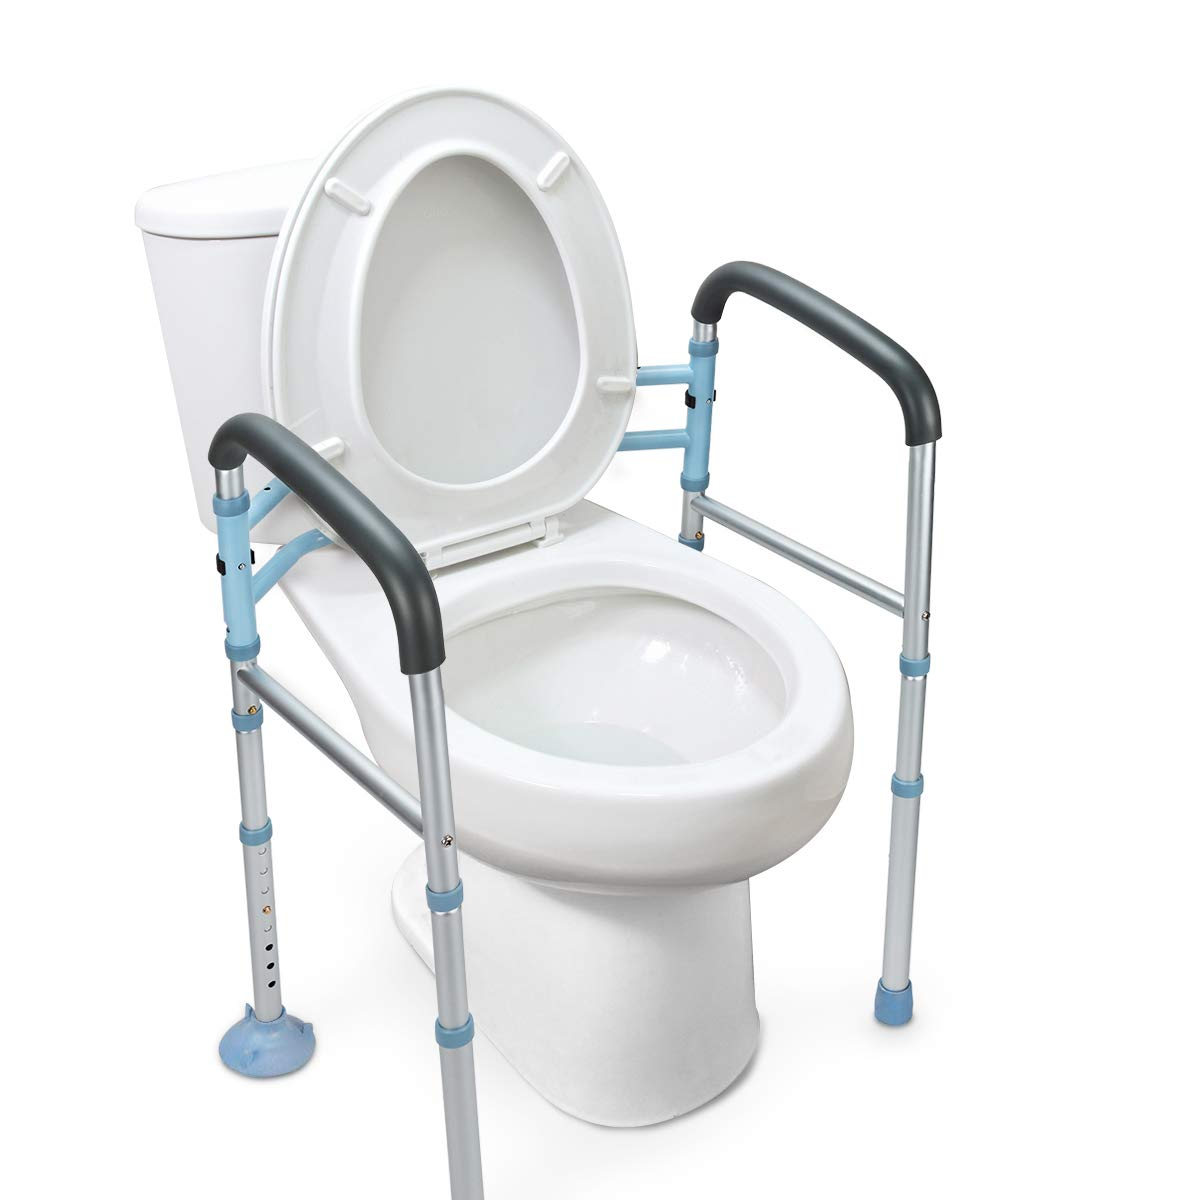 OasisSpace Stand Alone Toilet Safety Rail - Heavy Duty Medical Toilet Safety Frame for Elderly, Handicap and Disabled - Adjustable Bathroom Toilet Handrails Grab Bar, Fit Any Toilet by OasisSpace